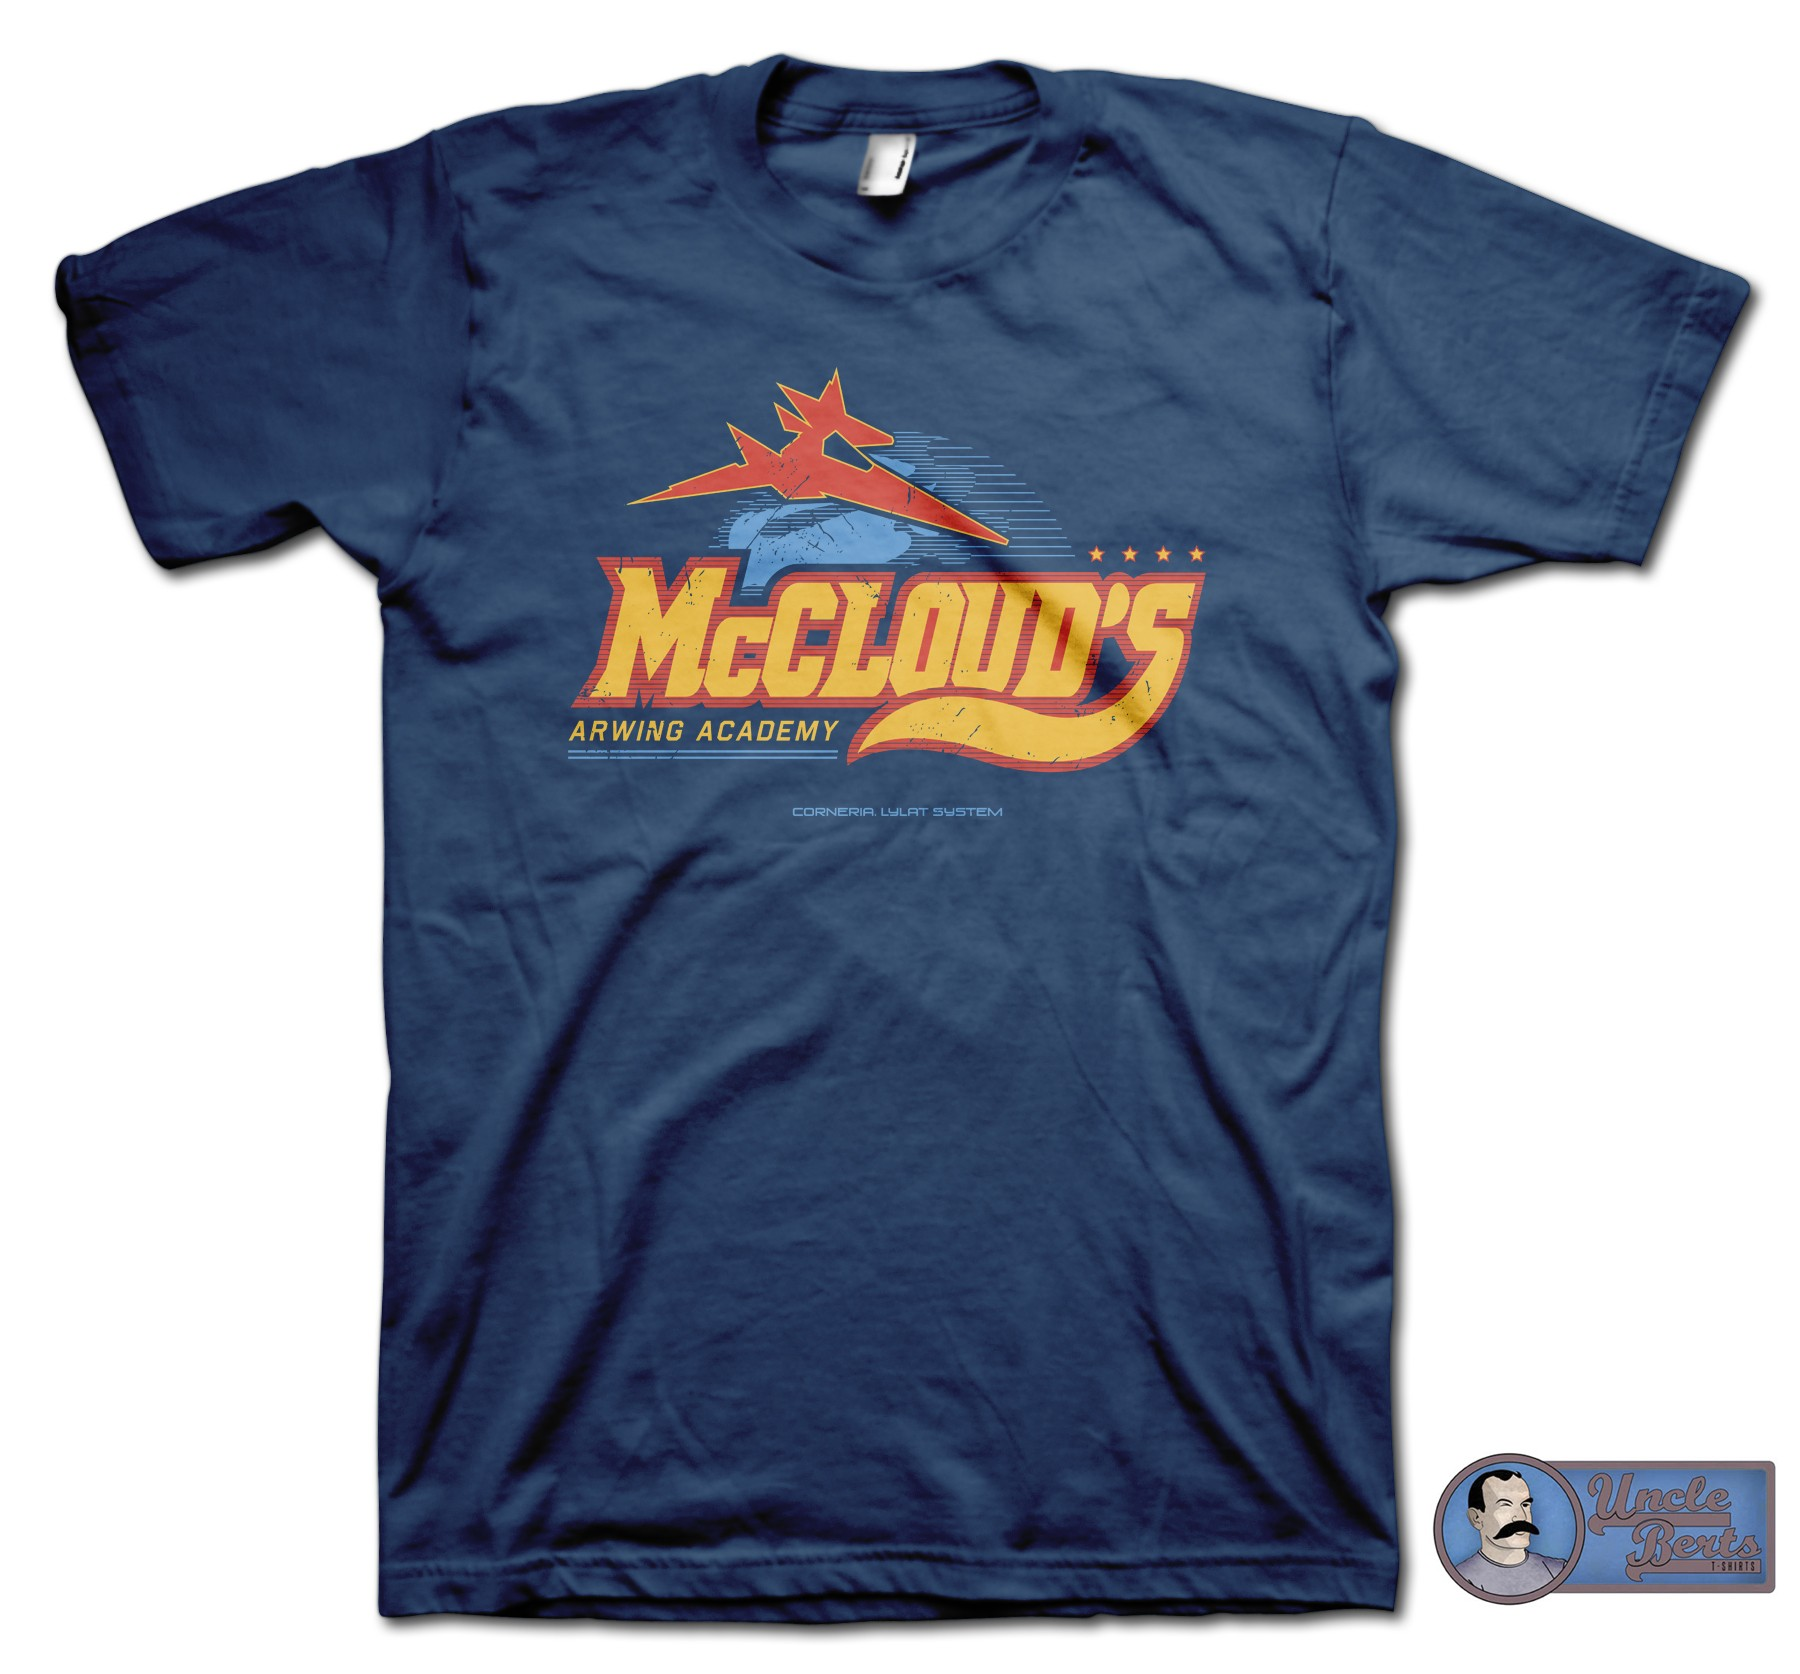 McCloud's Arwing Academy T-Shirt - inspired by the Star Fox series